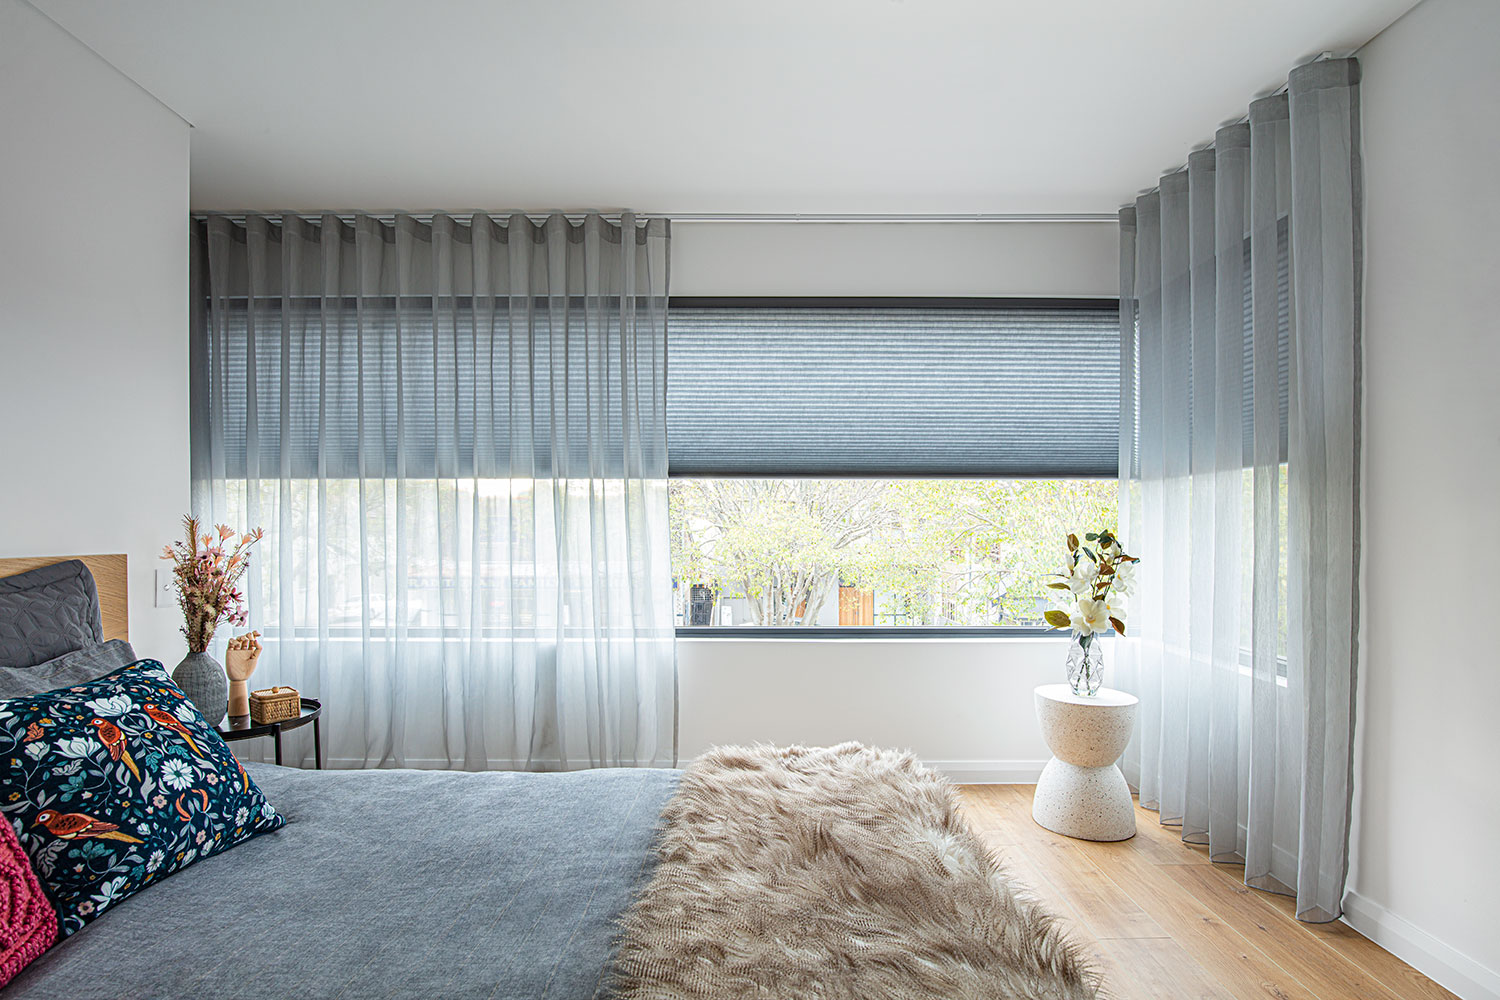 How To Complete A Room With Sheer Curtains Making Your Home Beautiful